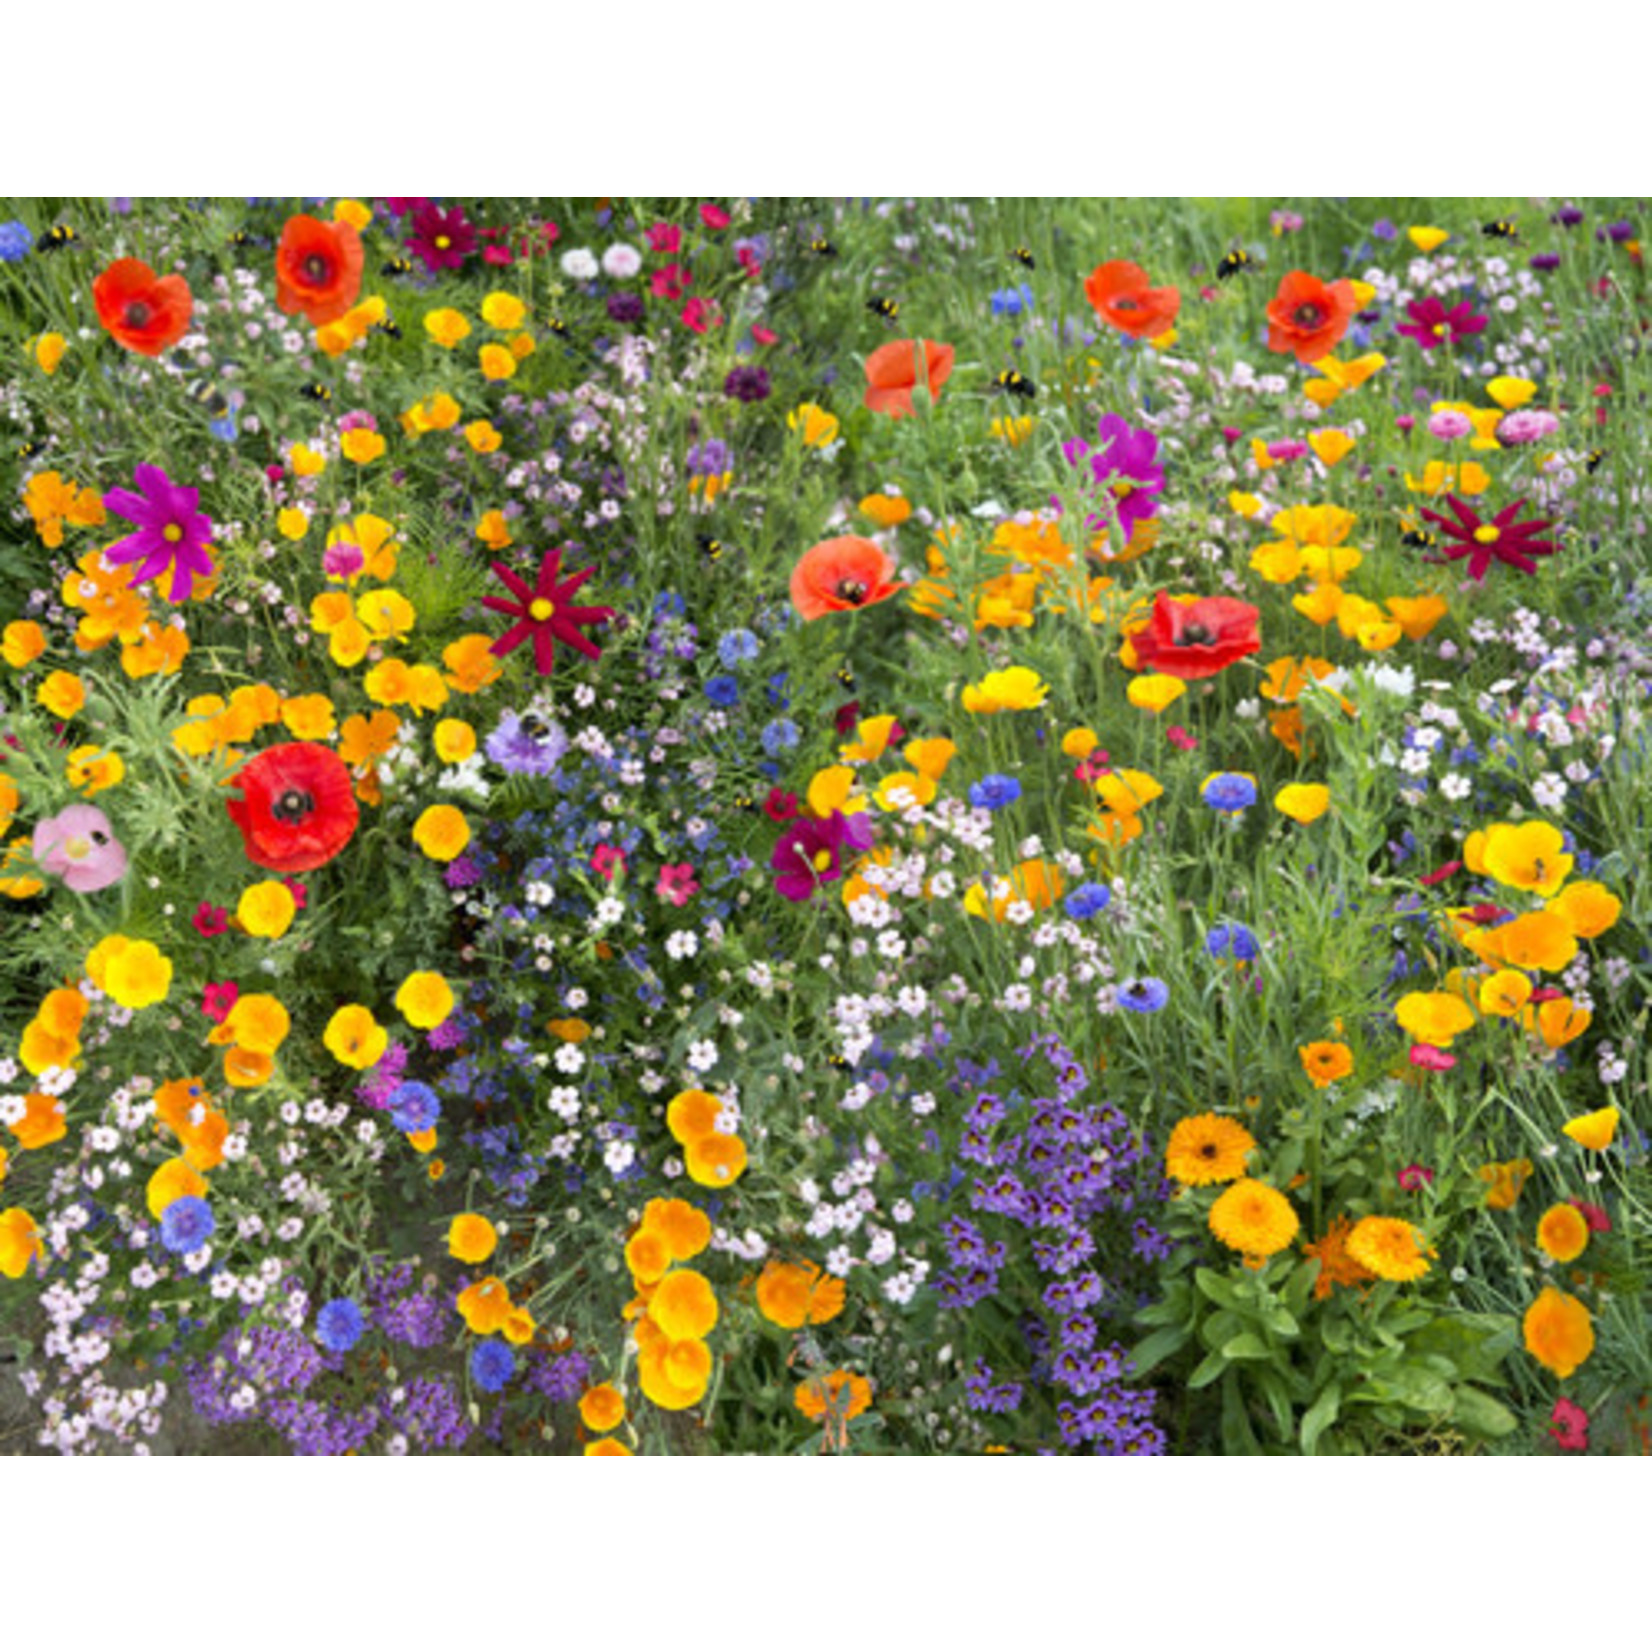 Annual Cutflower (seed pkg) - Cutflower Mixture